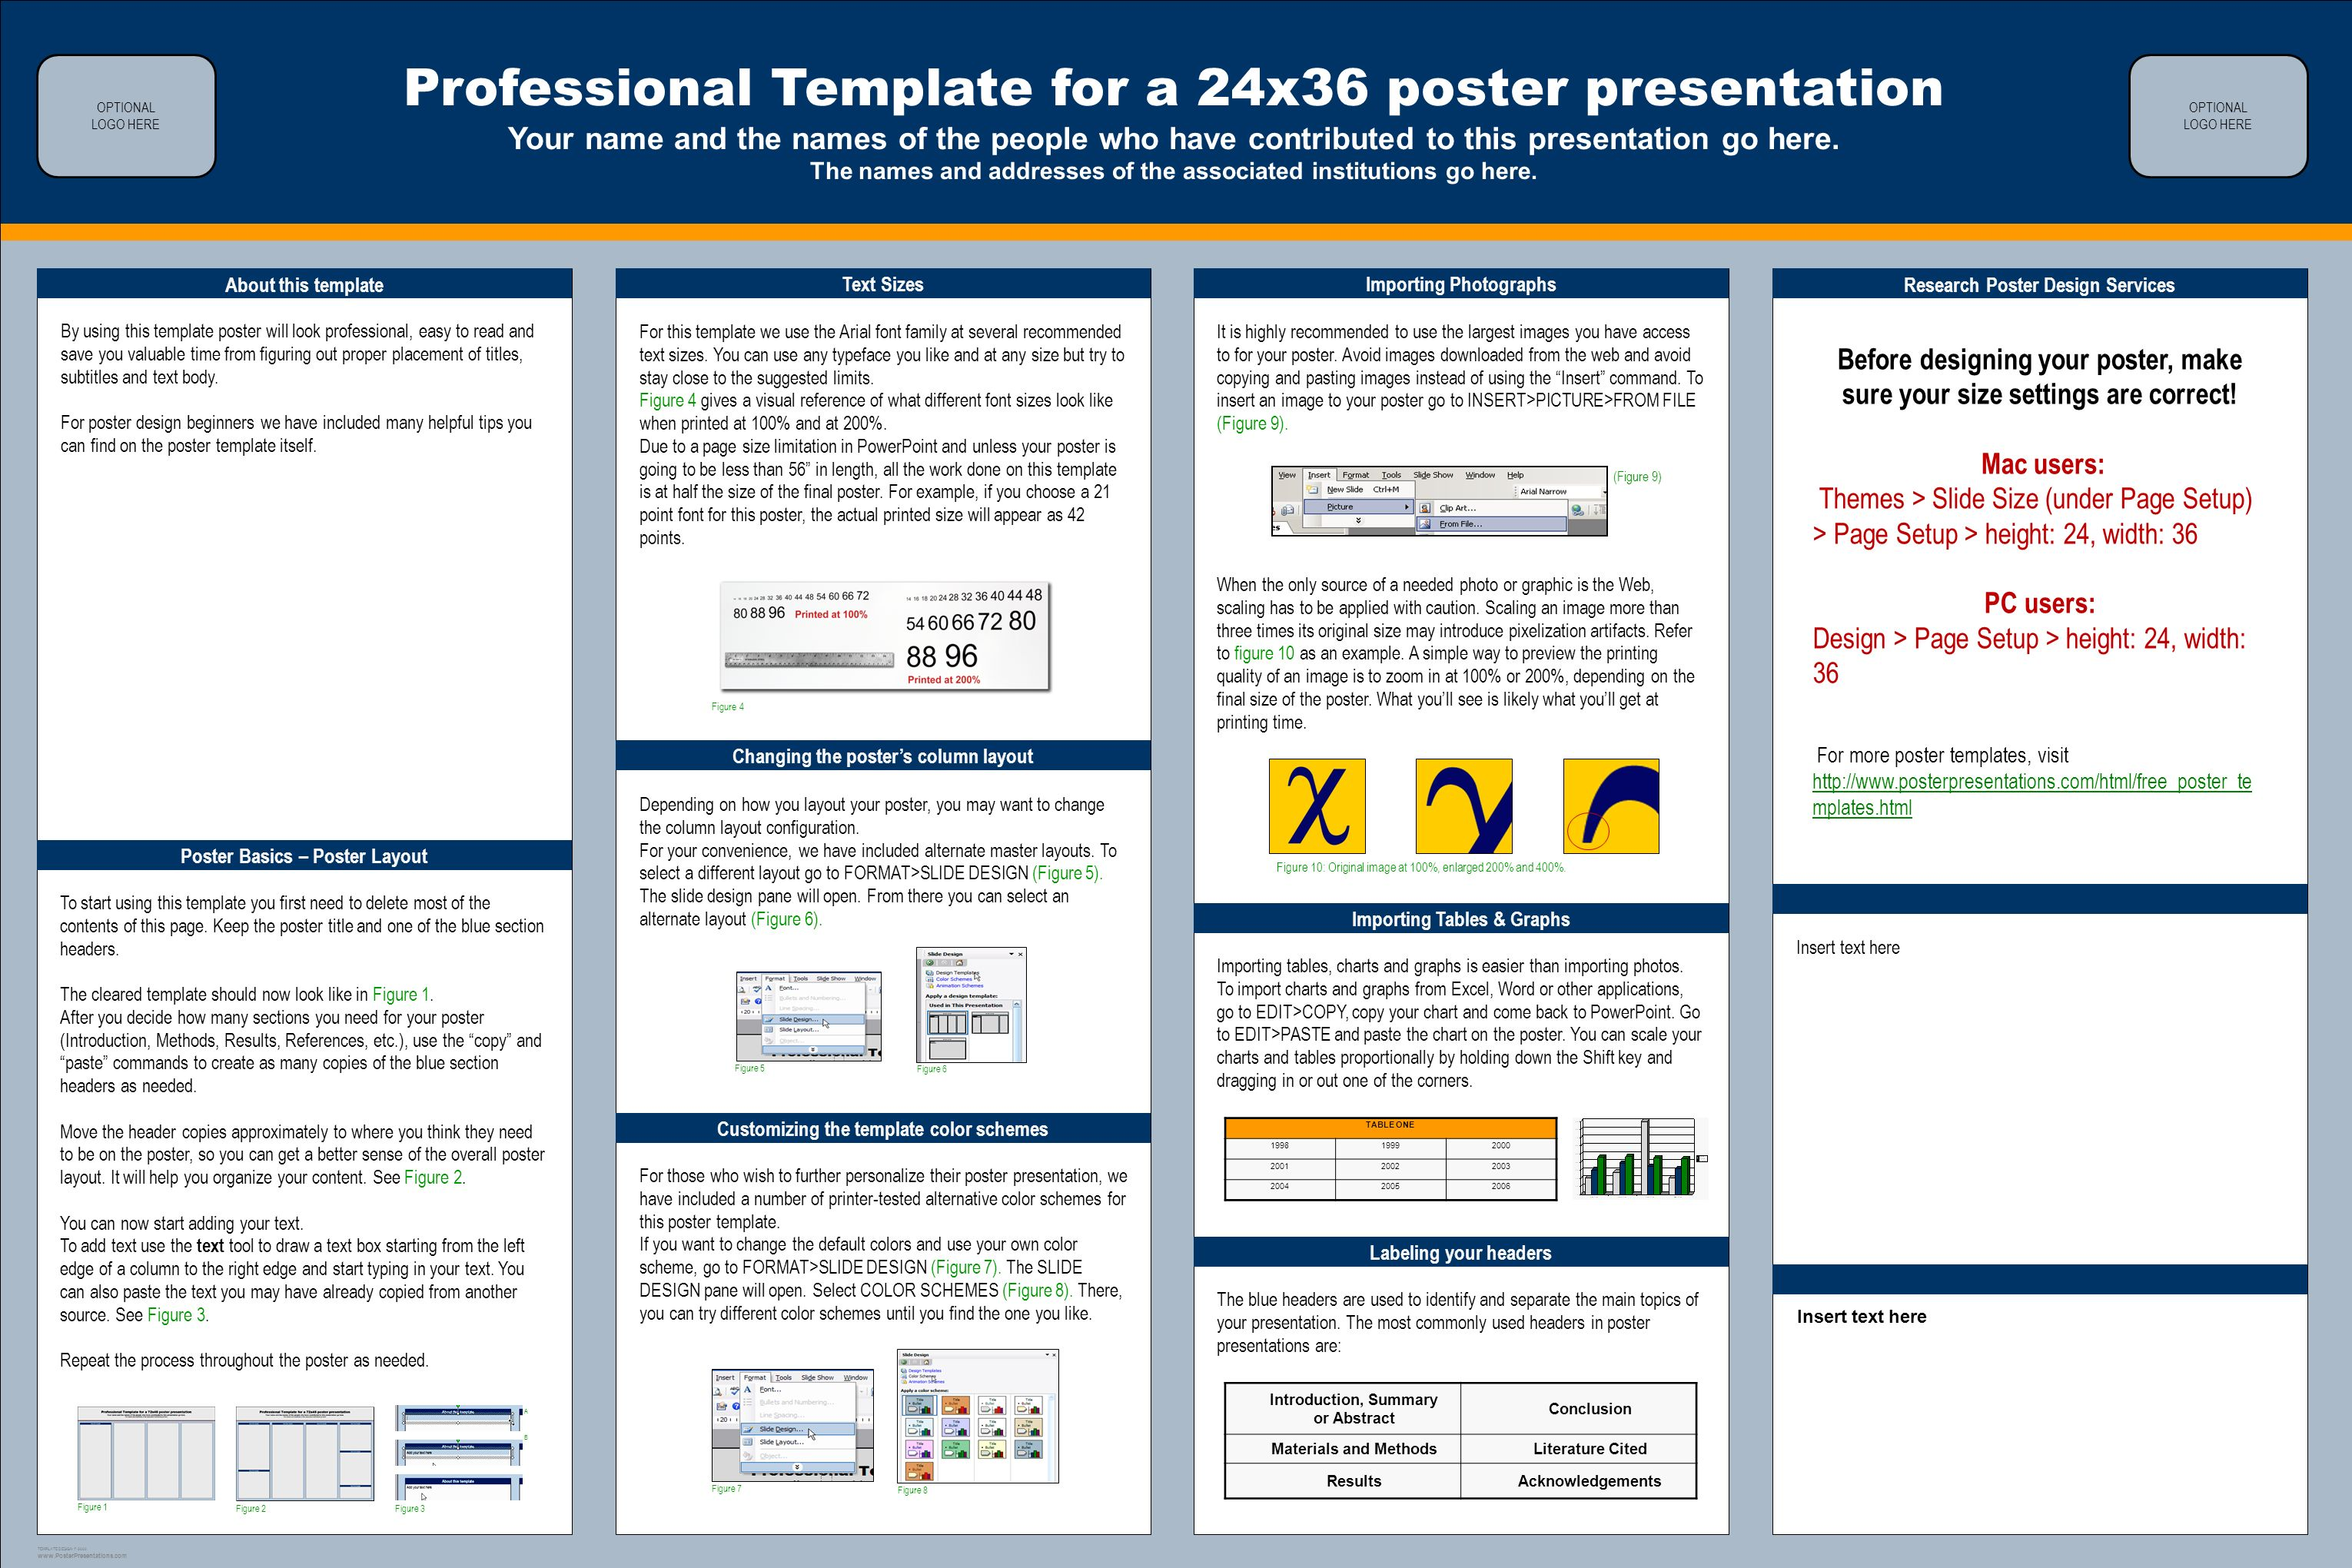 Template Design C Professional Template For A 24x36 Poster Presentation Your Name And The Names Of The People Who Have Ppt Download